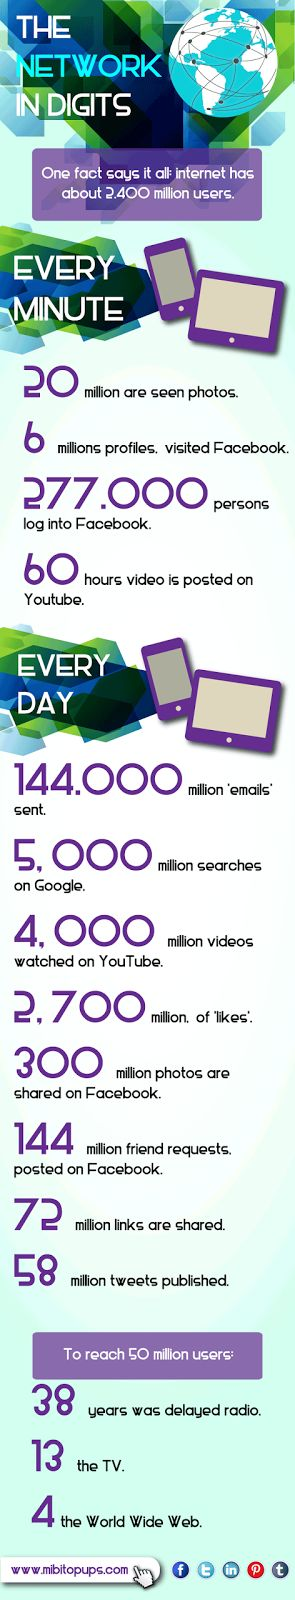 The network in digits: One fact says it all. Go to www.mibitopups.com